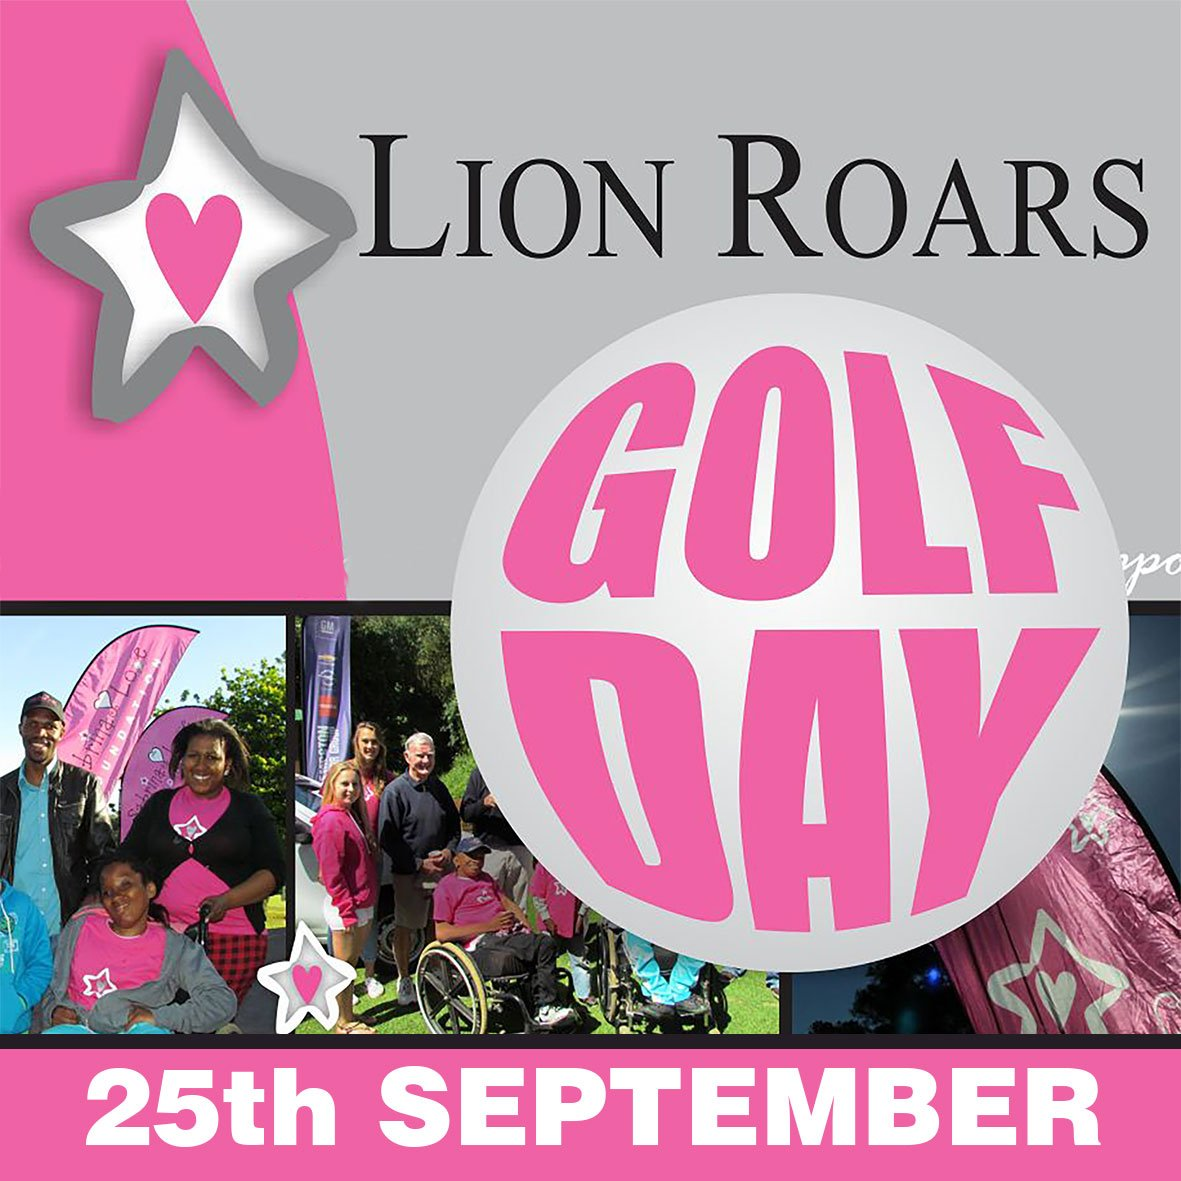 Lion Roars Golf Day - 25th Sept 2015 1